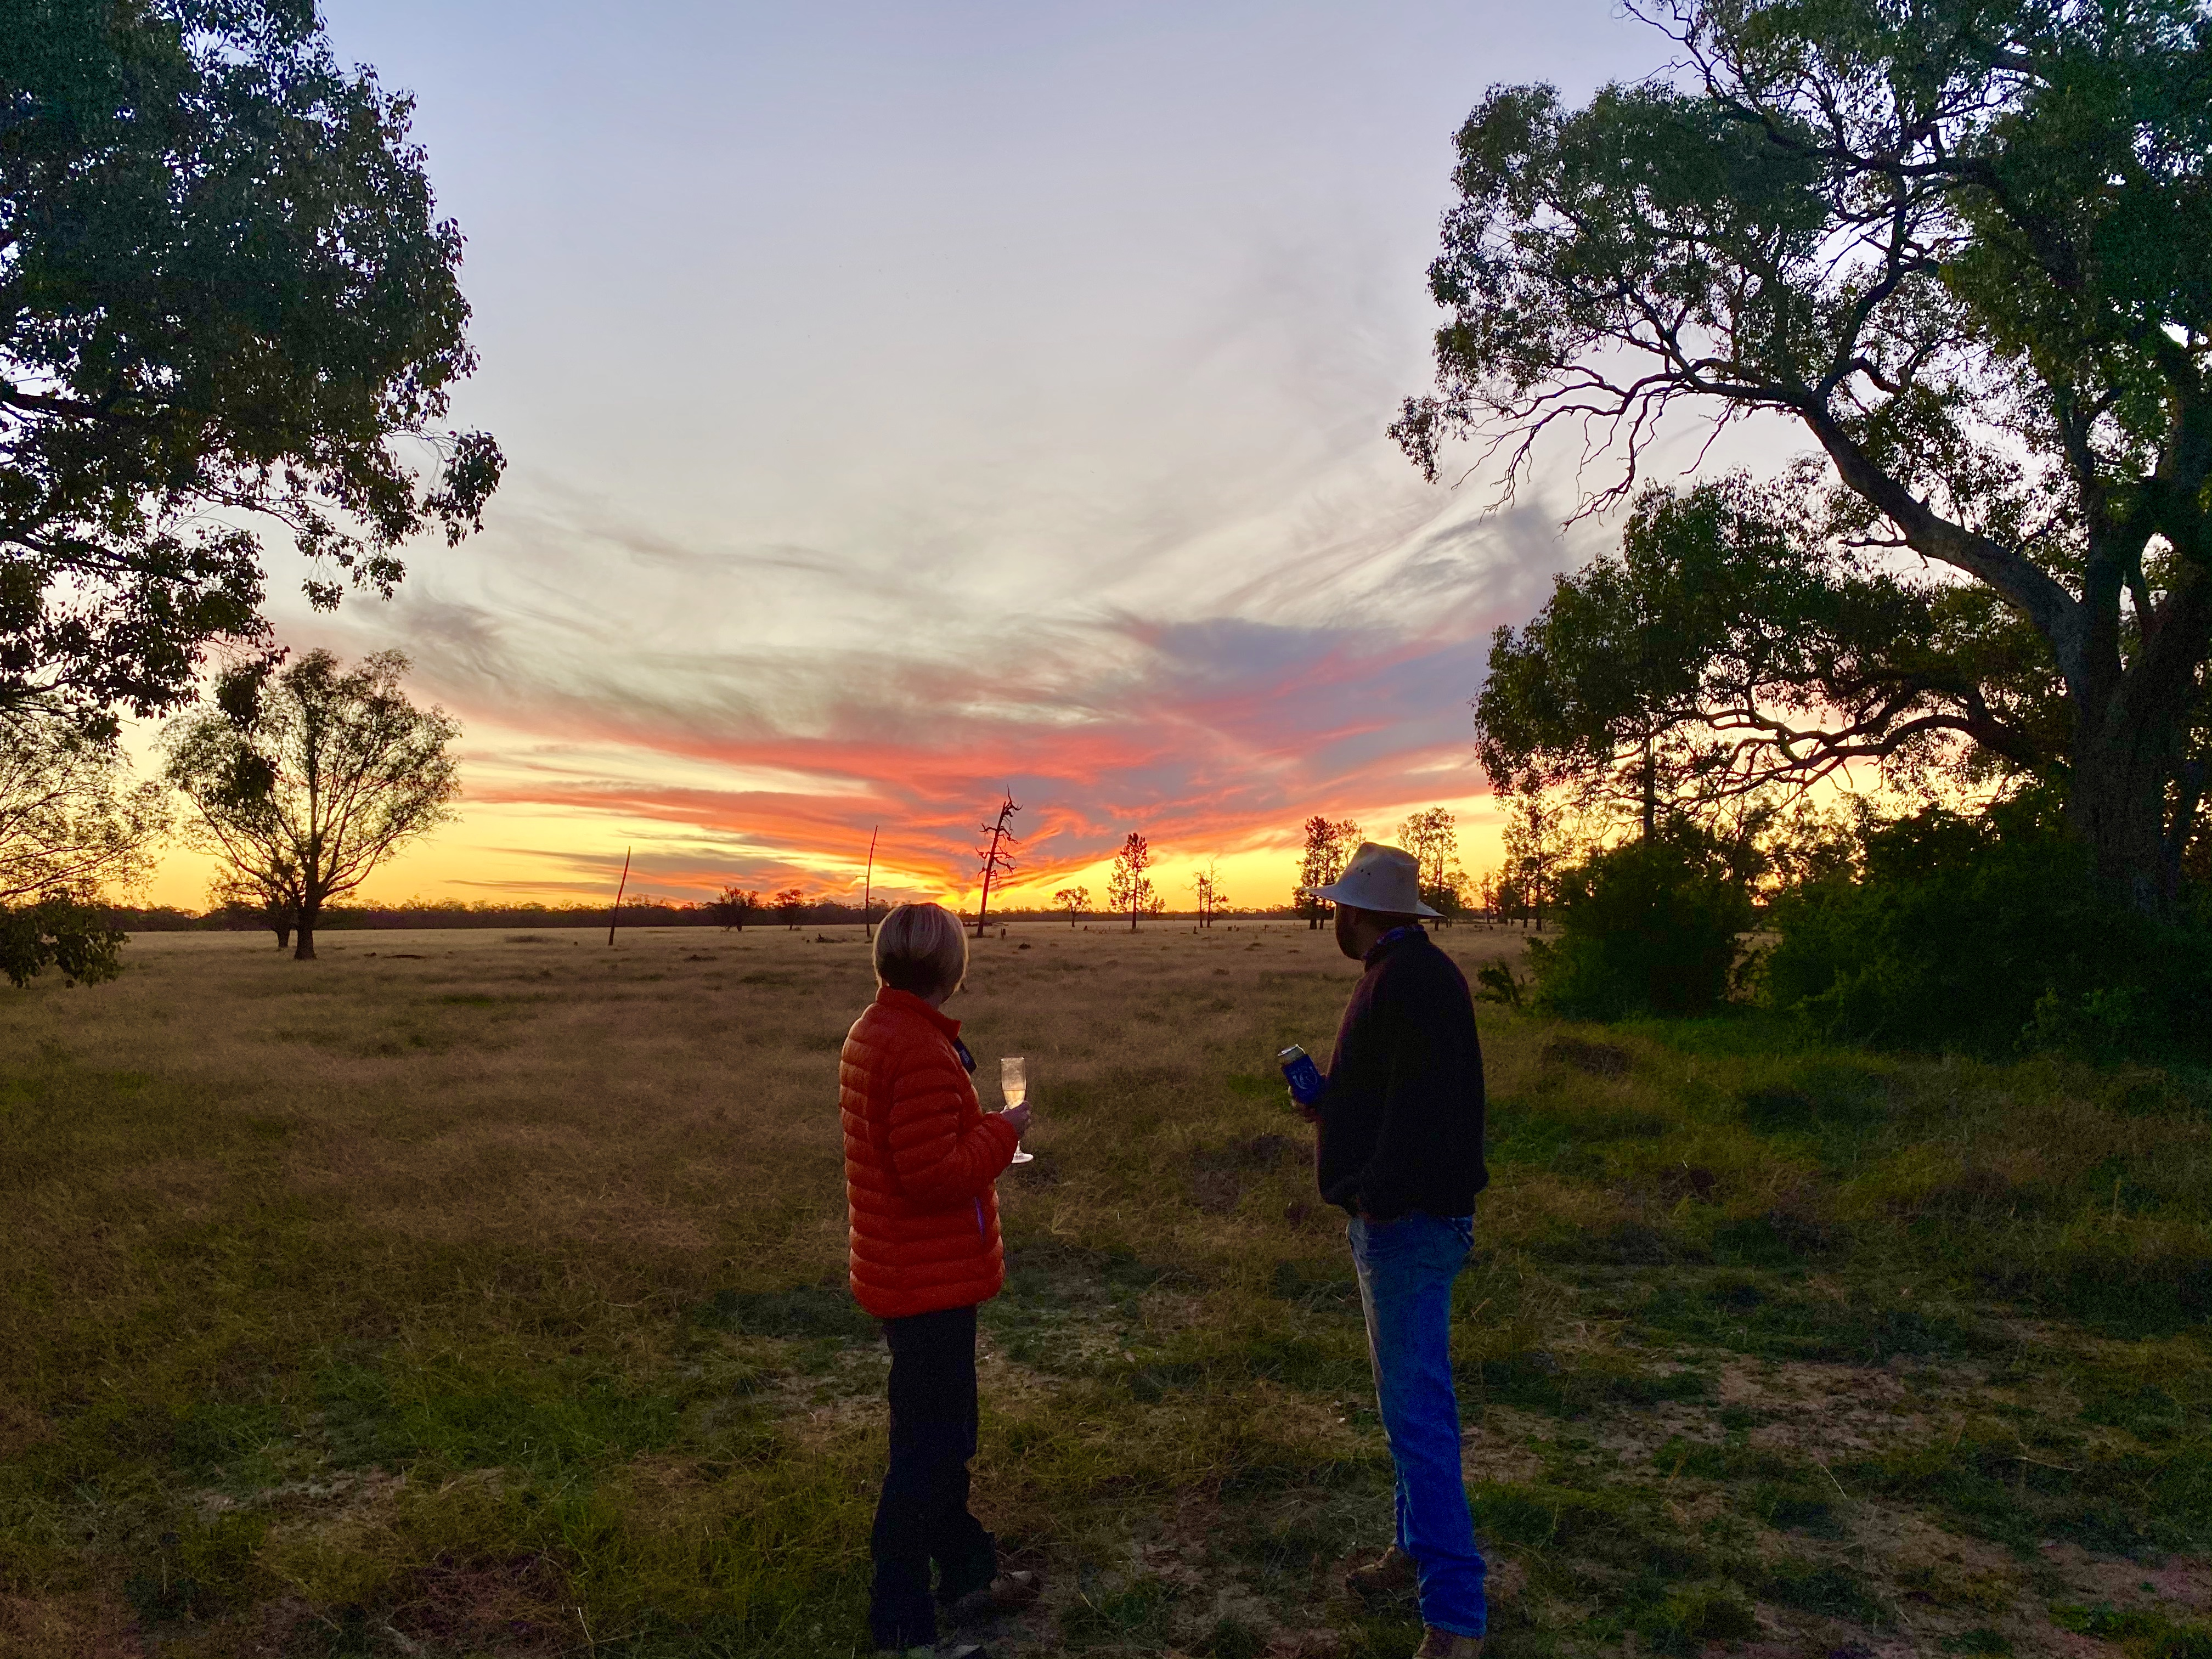 Sundowners in the remote outback of New South Wales. Photo Credit: Crooked Compass